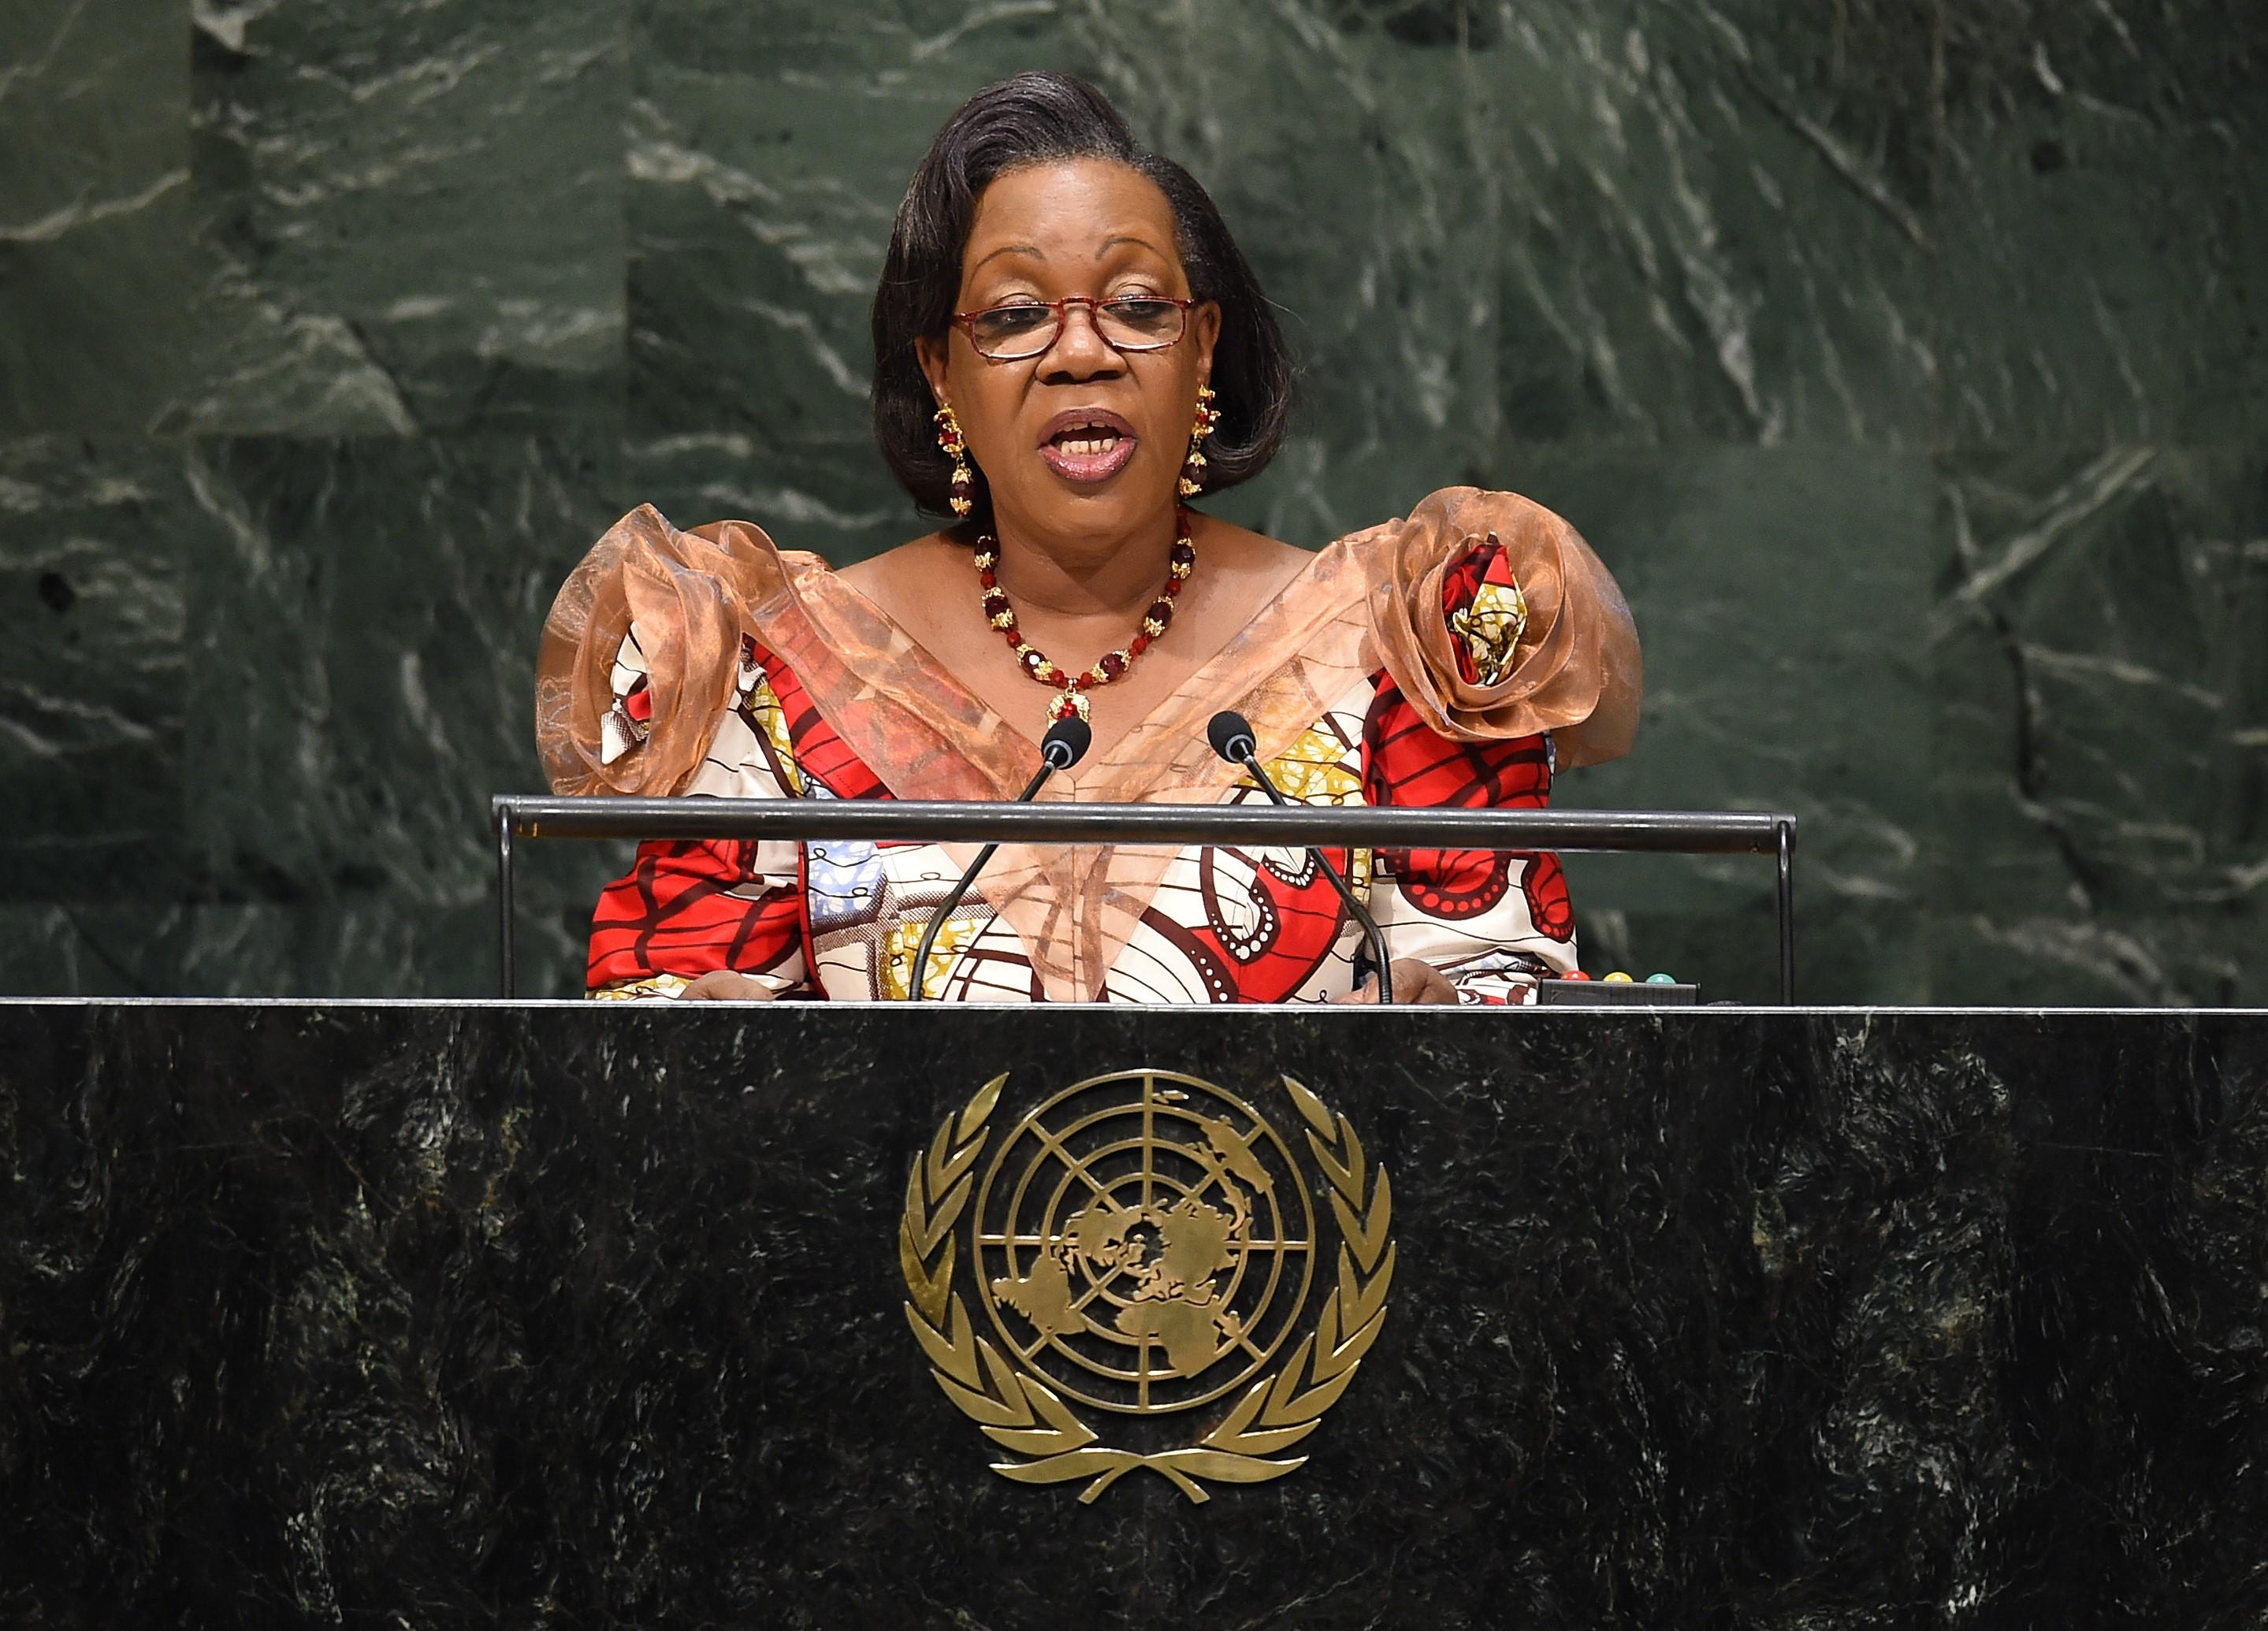 Catherine Samba-Panza, President of the Transitional Government of the Central African Republic, speaks during the 69th Session of the UN General Assembly in New York on September 27, 2014